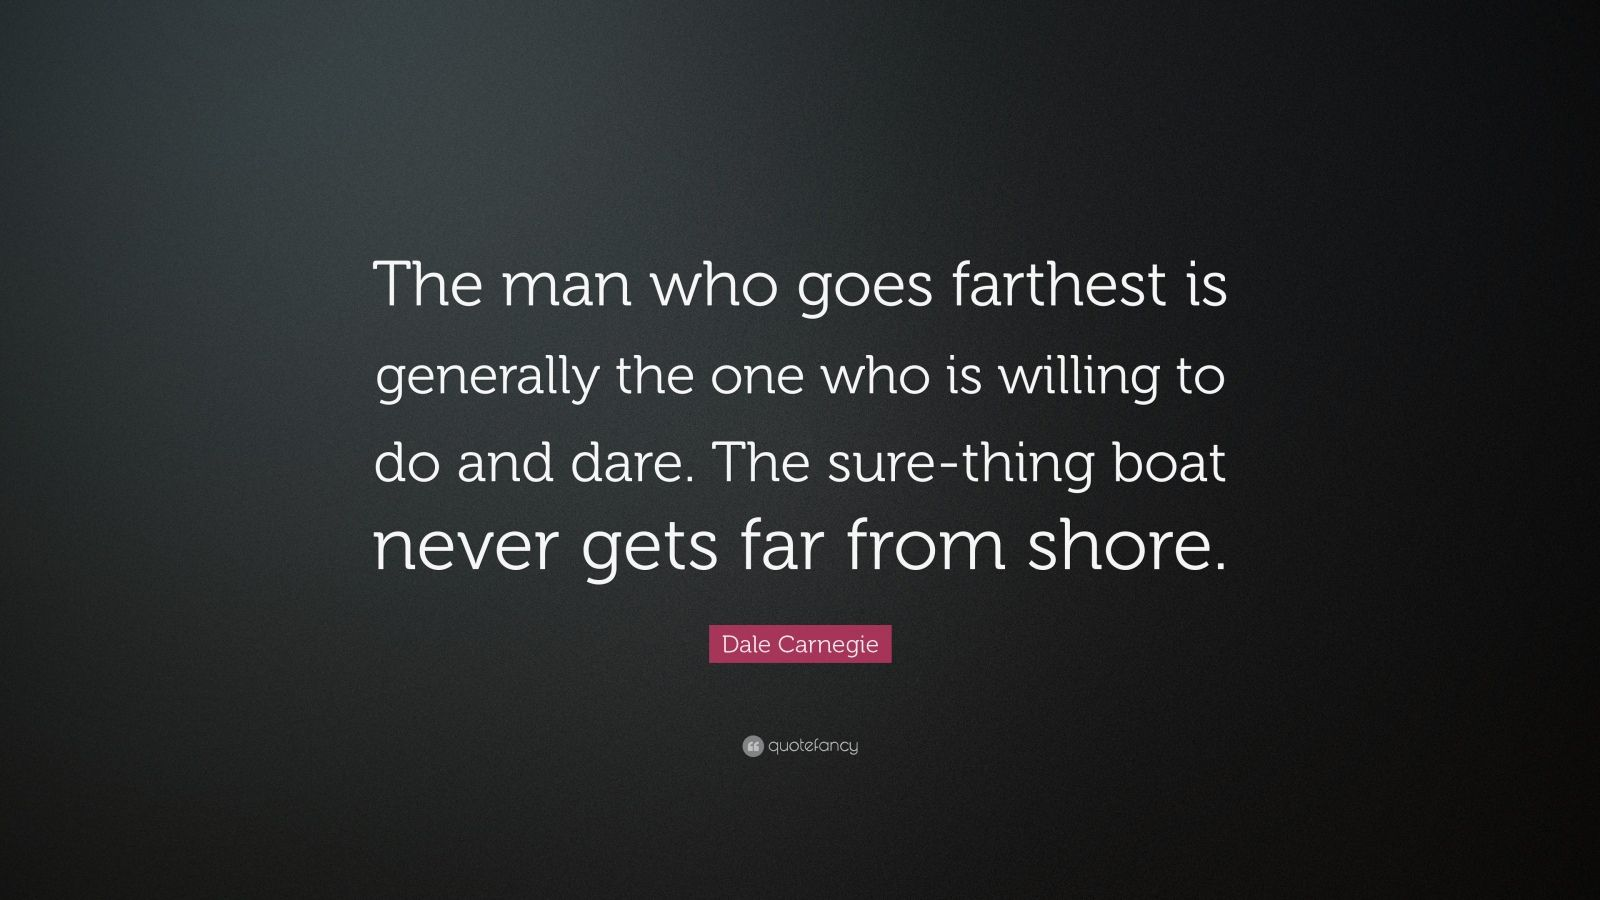 Dale Carnegie Quote SureThing